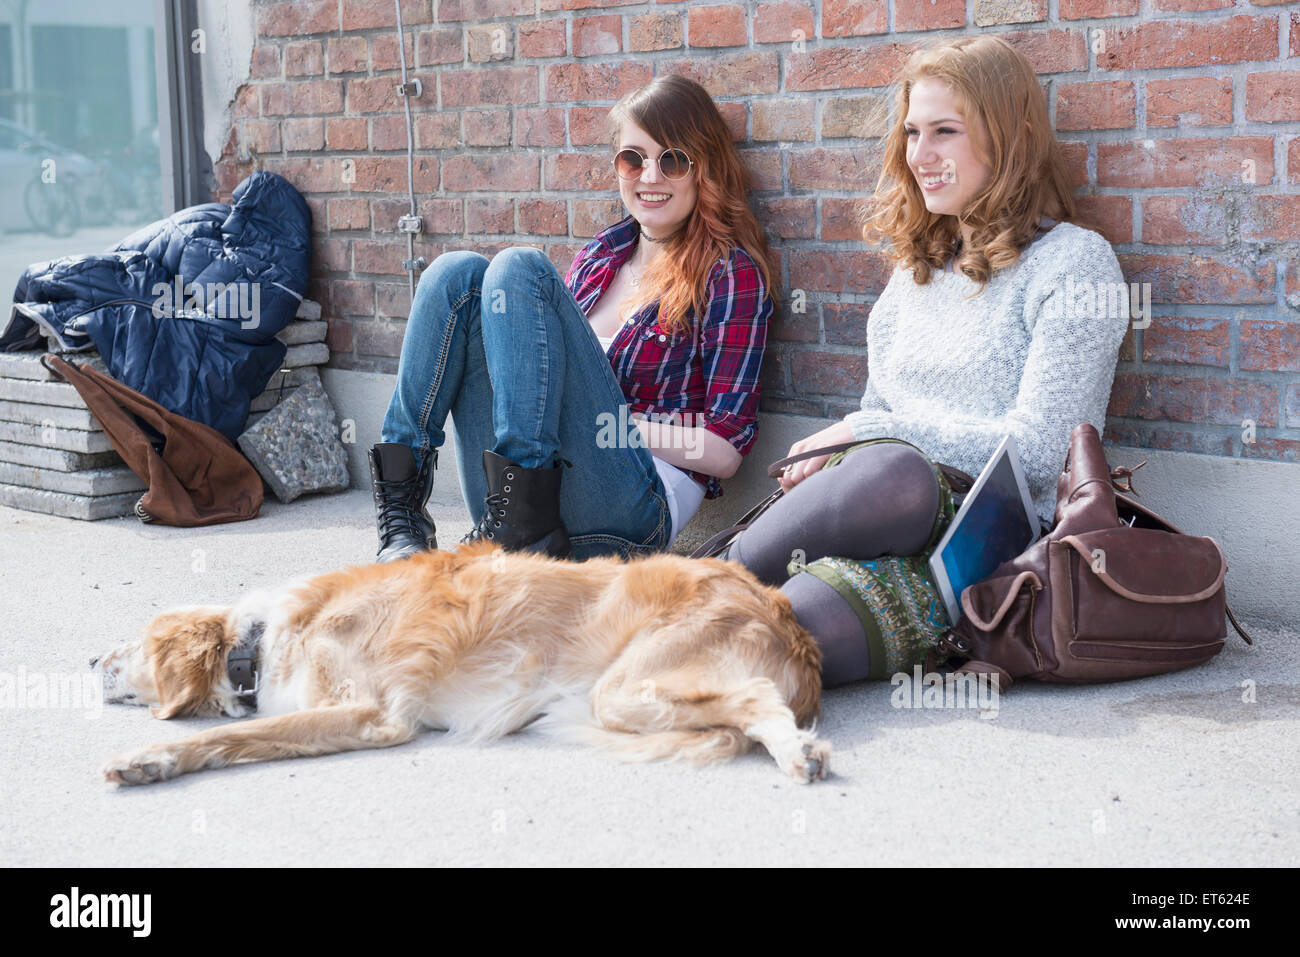 Two friends with dog in front of brick wall, Munich, Bavaria, Germany - Stock Image